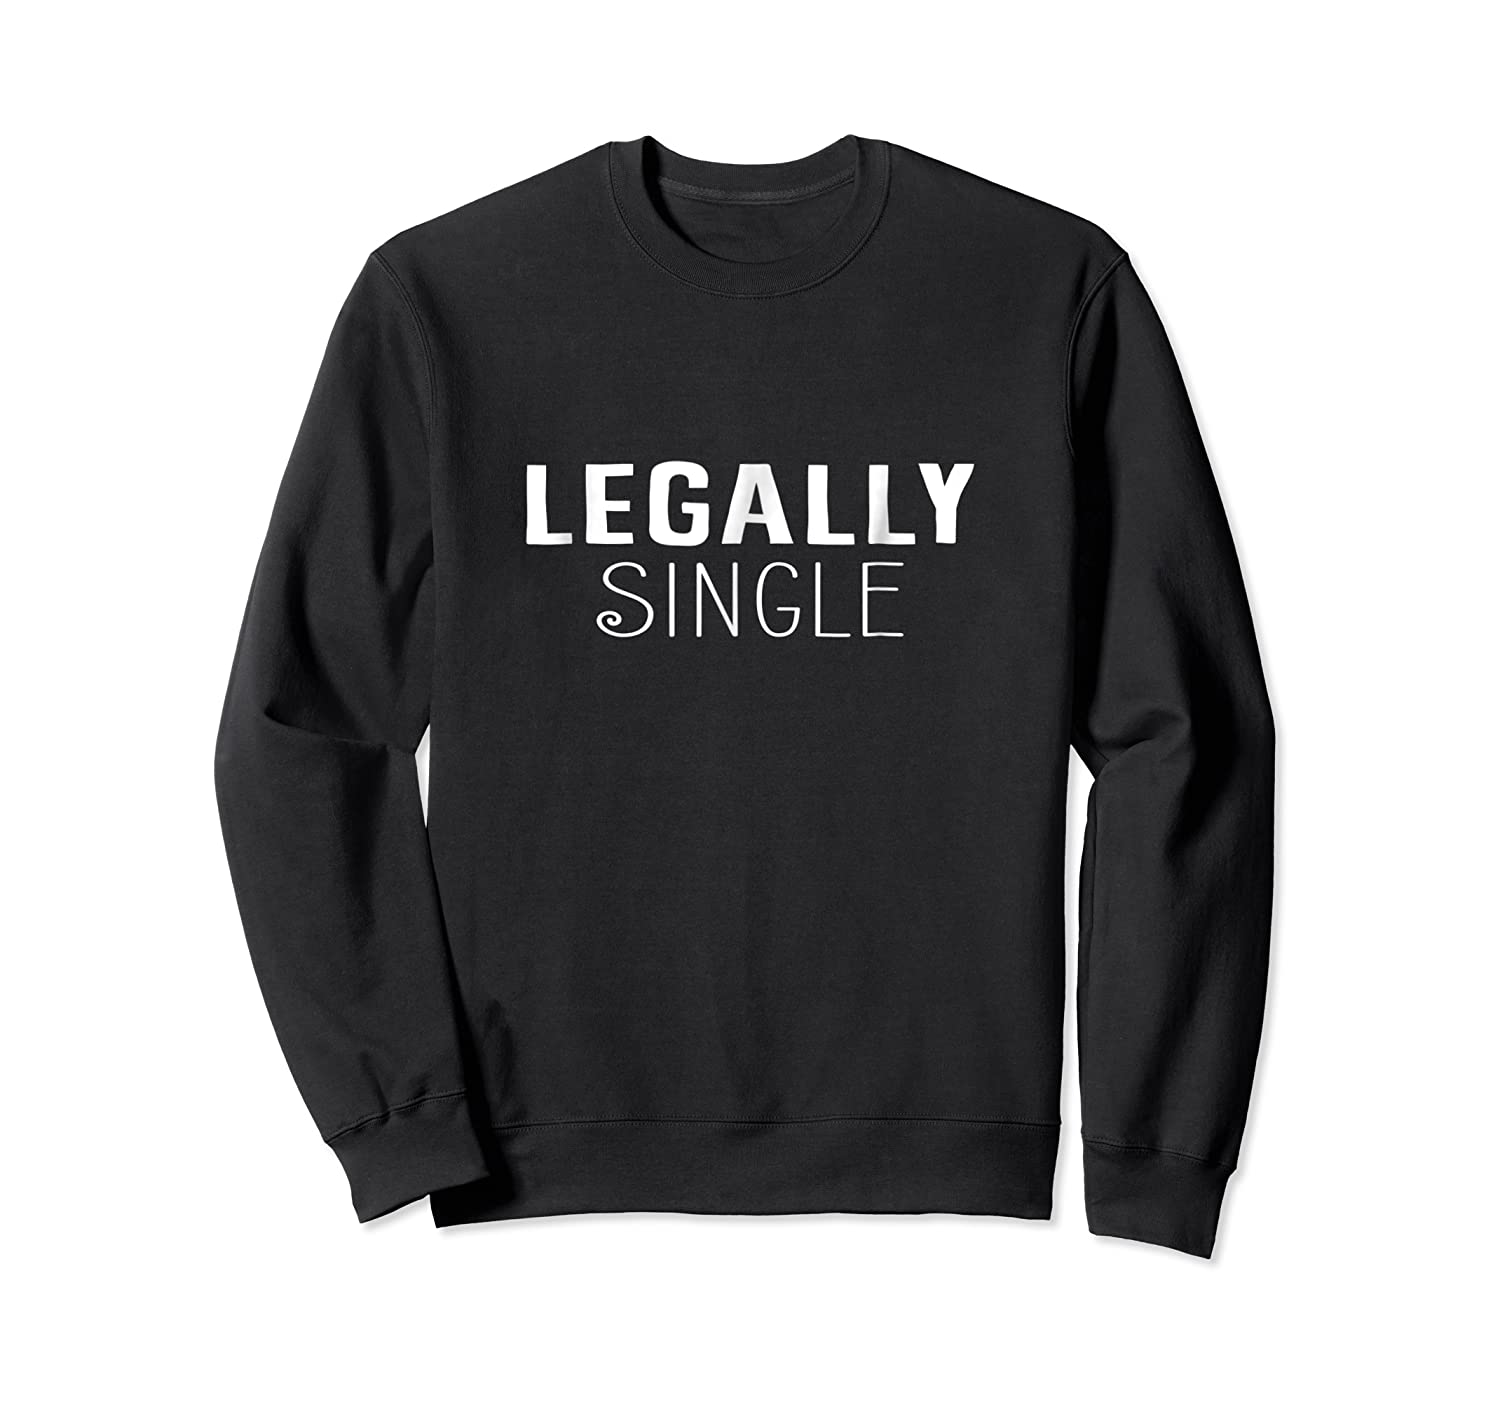 Funny Divorce Gift Legally Single Relationship T Shirt Crewneck Sweater